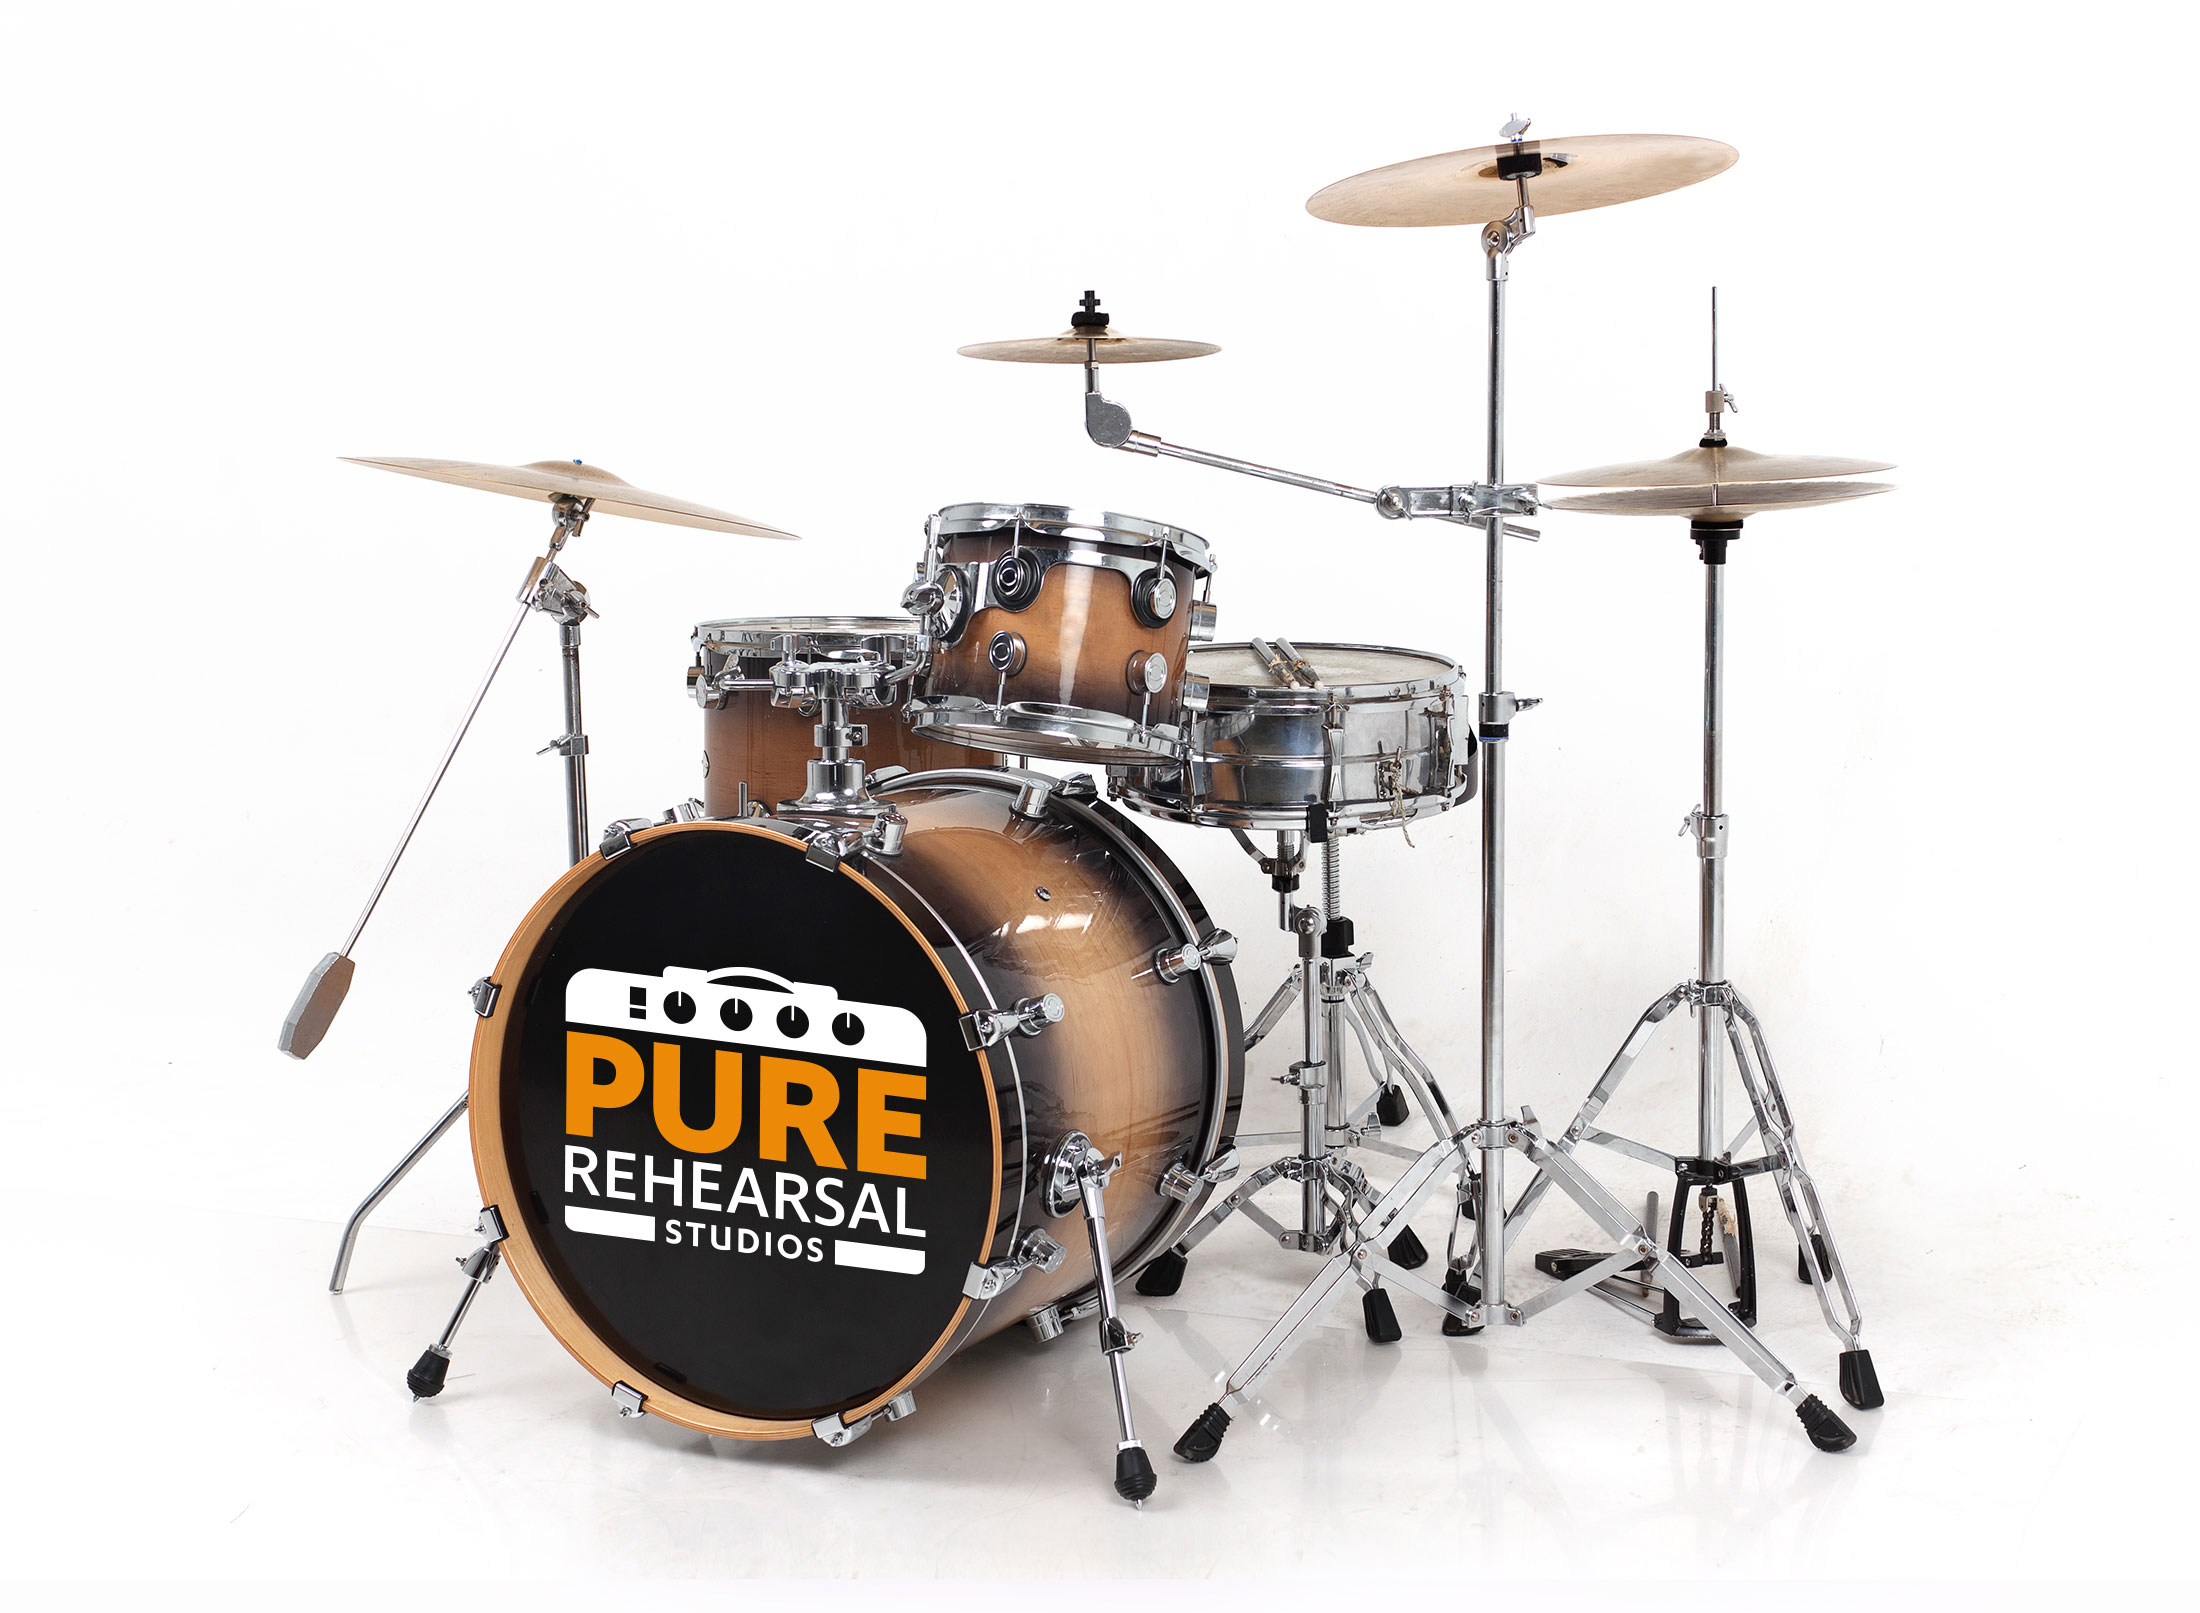 Pure rehearsal drum kit image